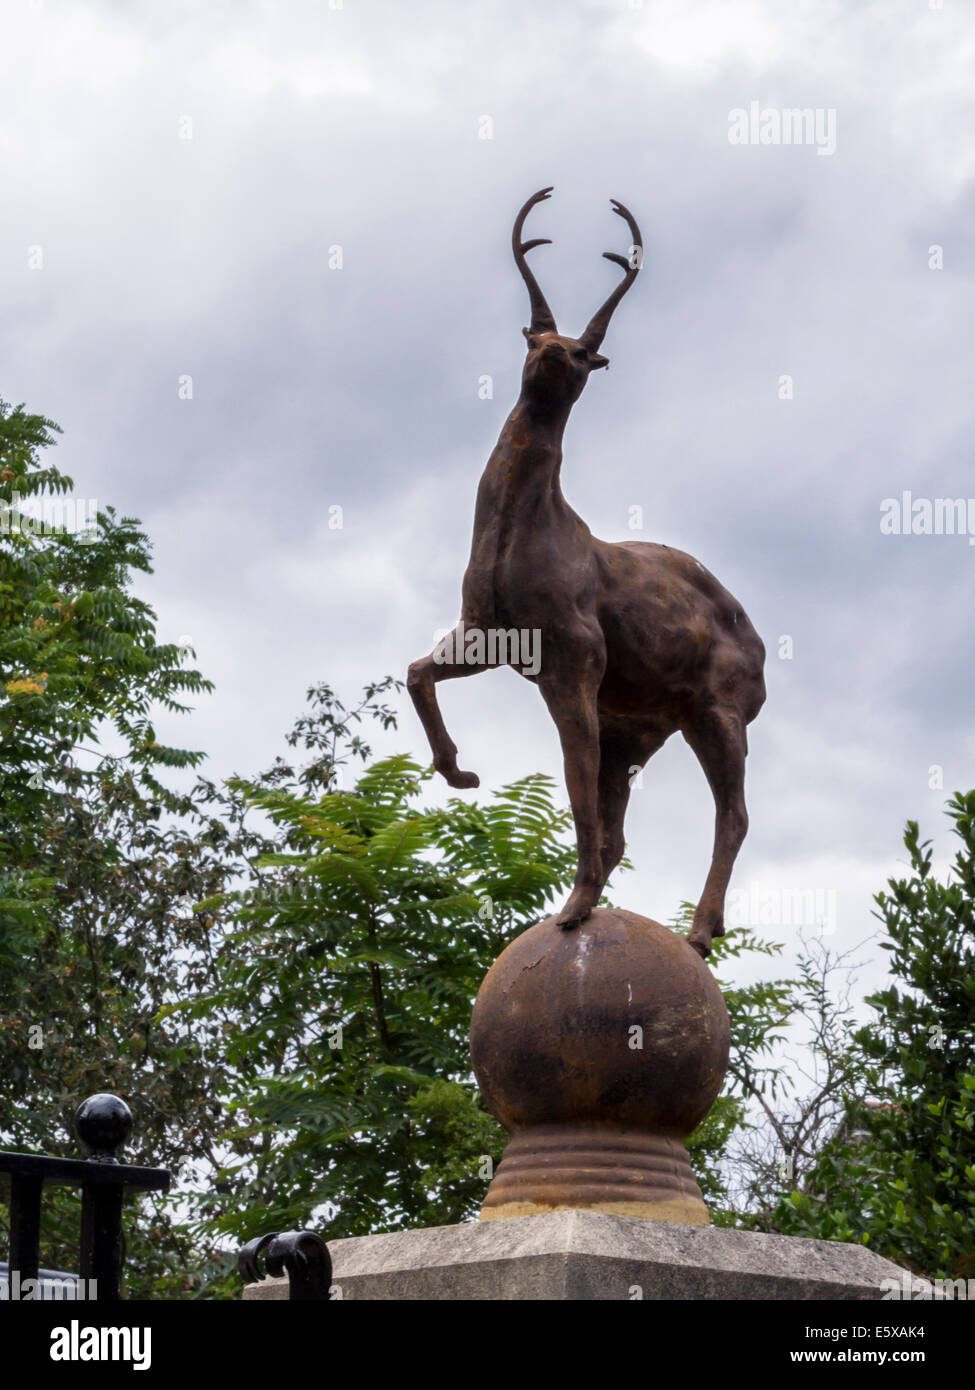 Deer standing on pillar of a gatepost of a home against a cloudy sky - East Twickenham, London TW9 - Stock Image